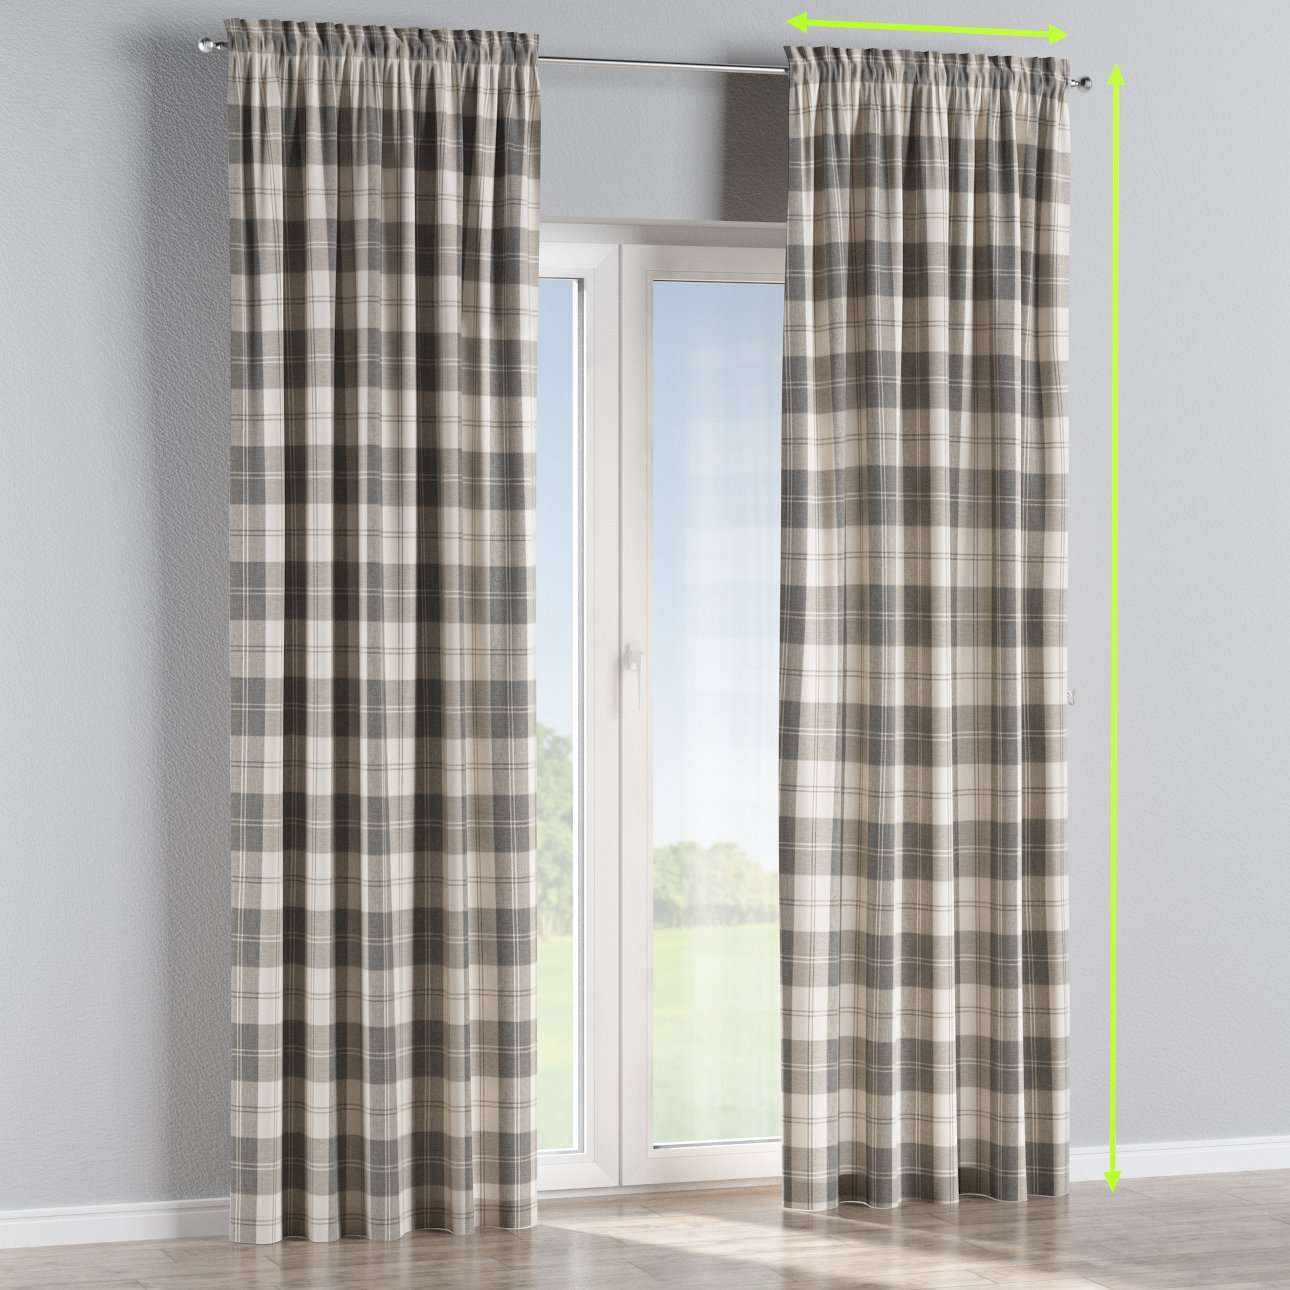 Slot and frill lined curtains in collection Edinburgh, fabric: 115-79